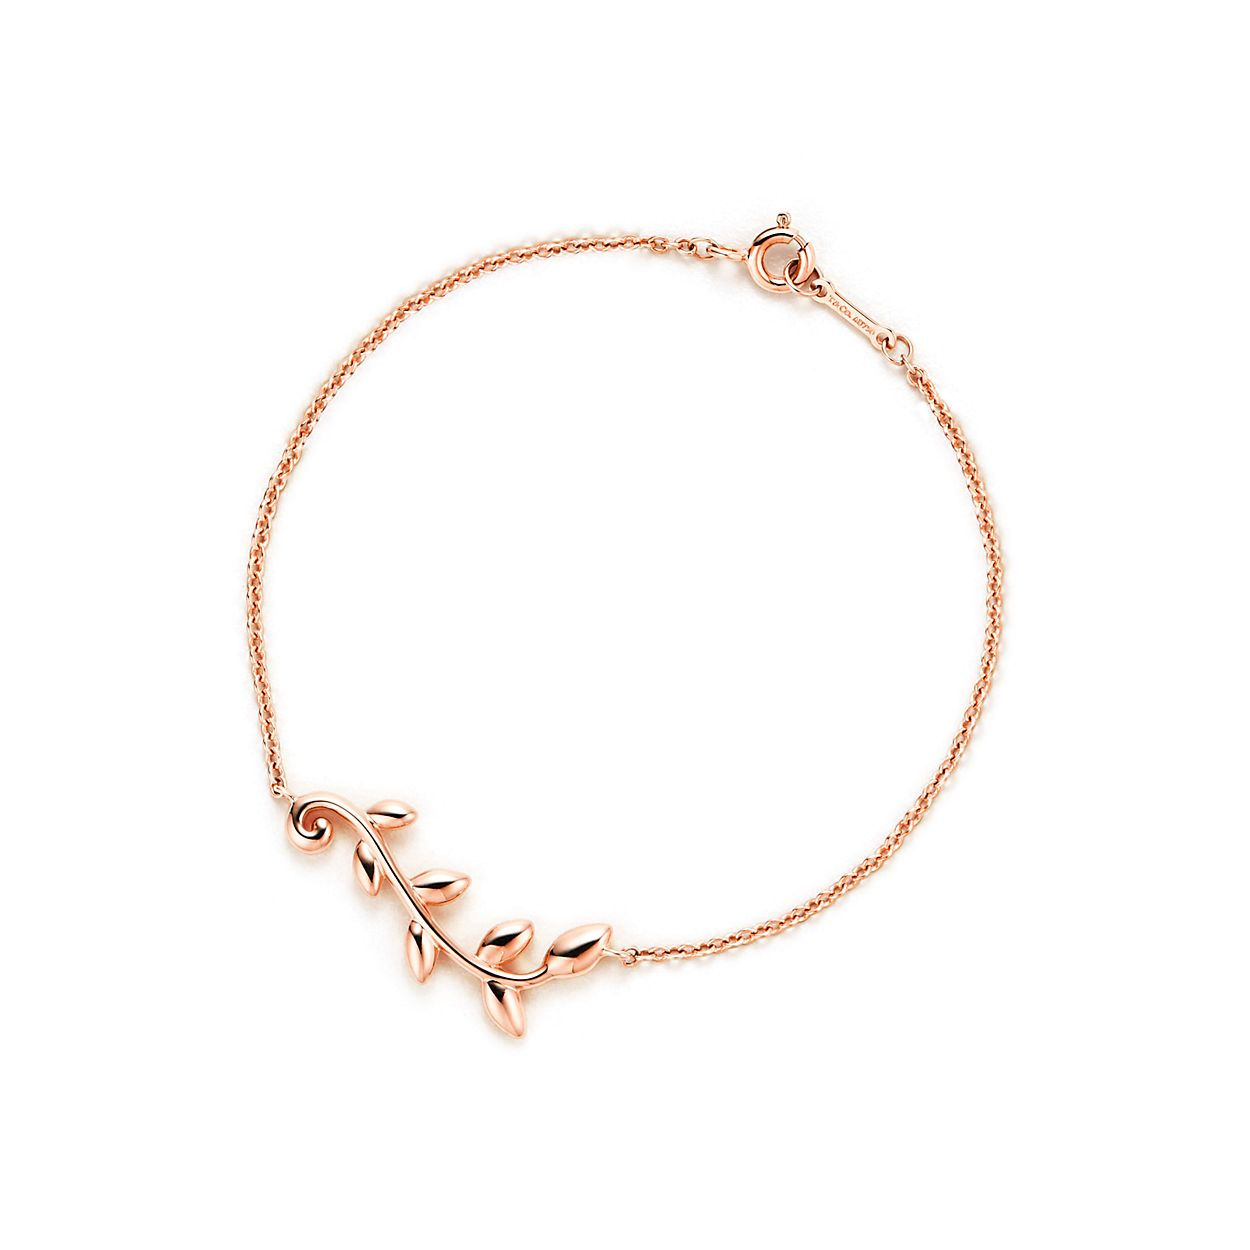 Paloma Picasso Olive Leaf vine pendant in 18k rose gold Tiffany & Co. 6ACYrFcS5